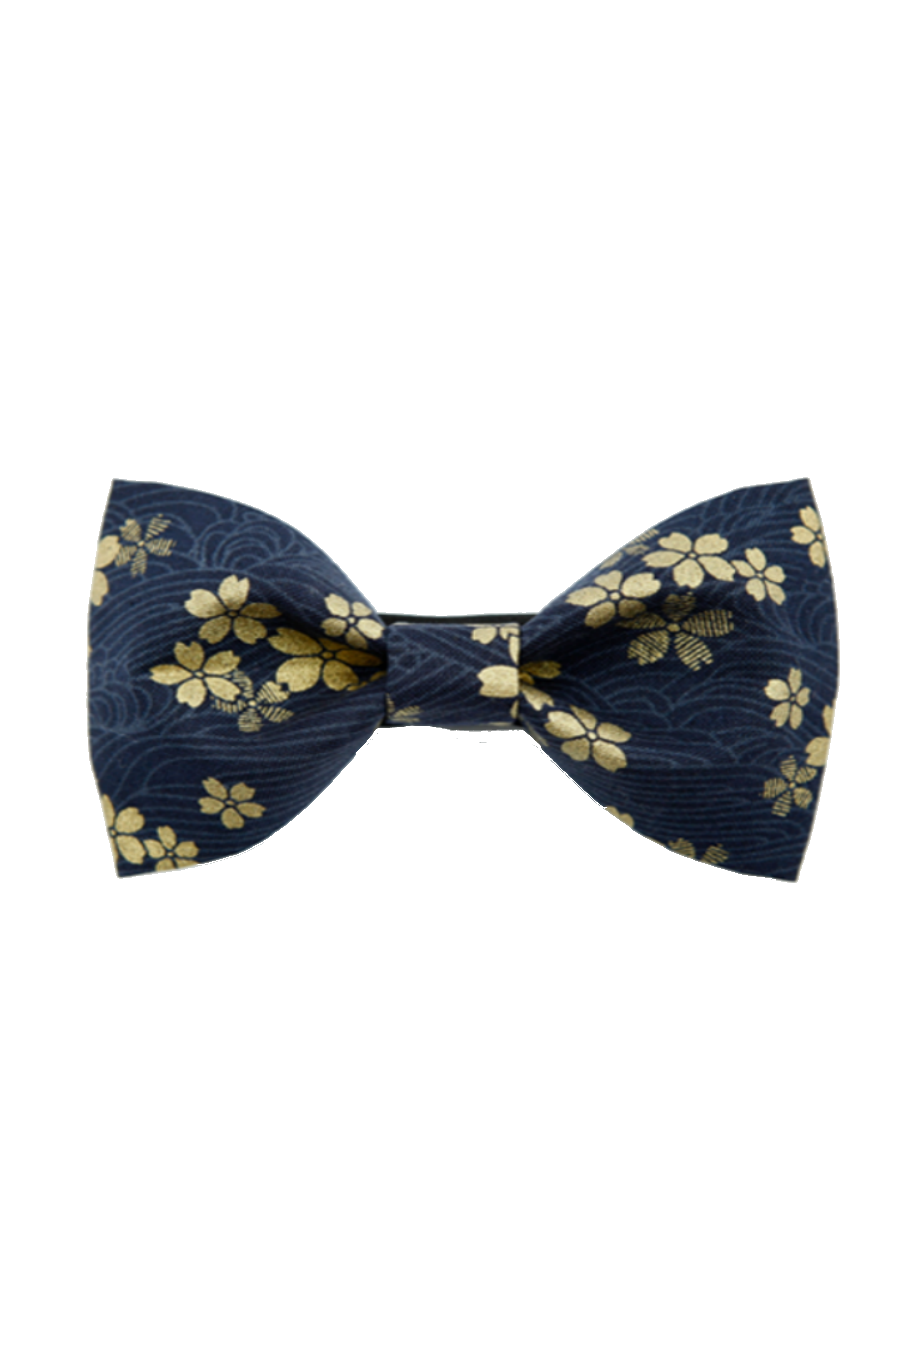 Sakura Printed Bow Tie In Navy